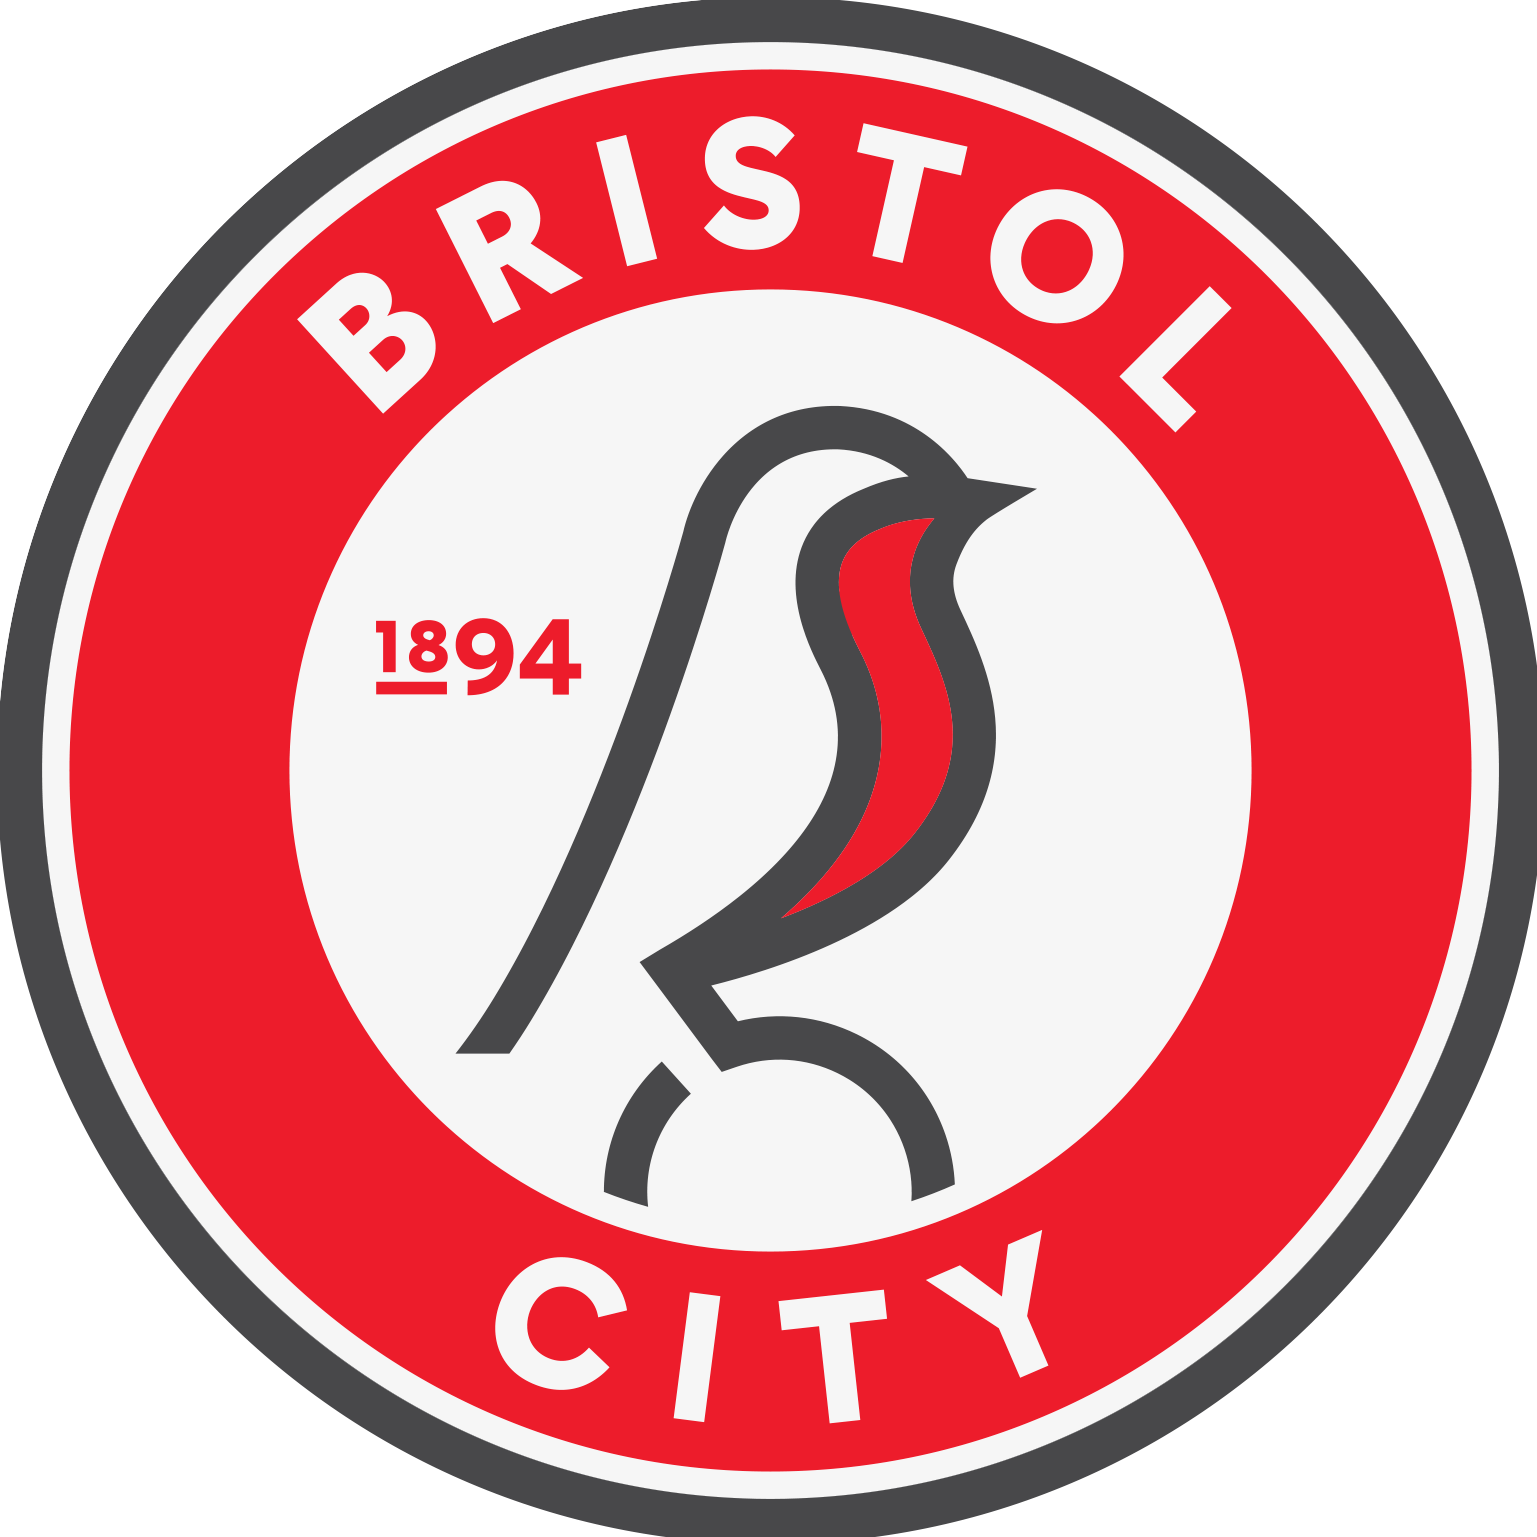 Hosted By Bristol City